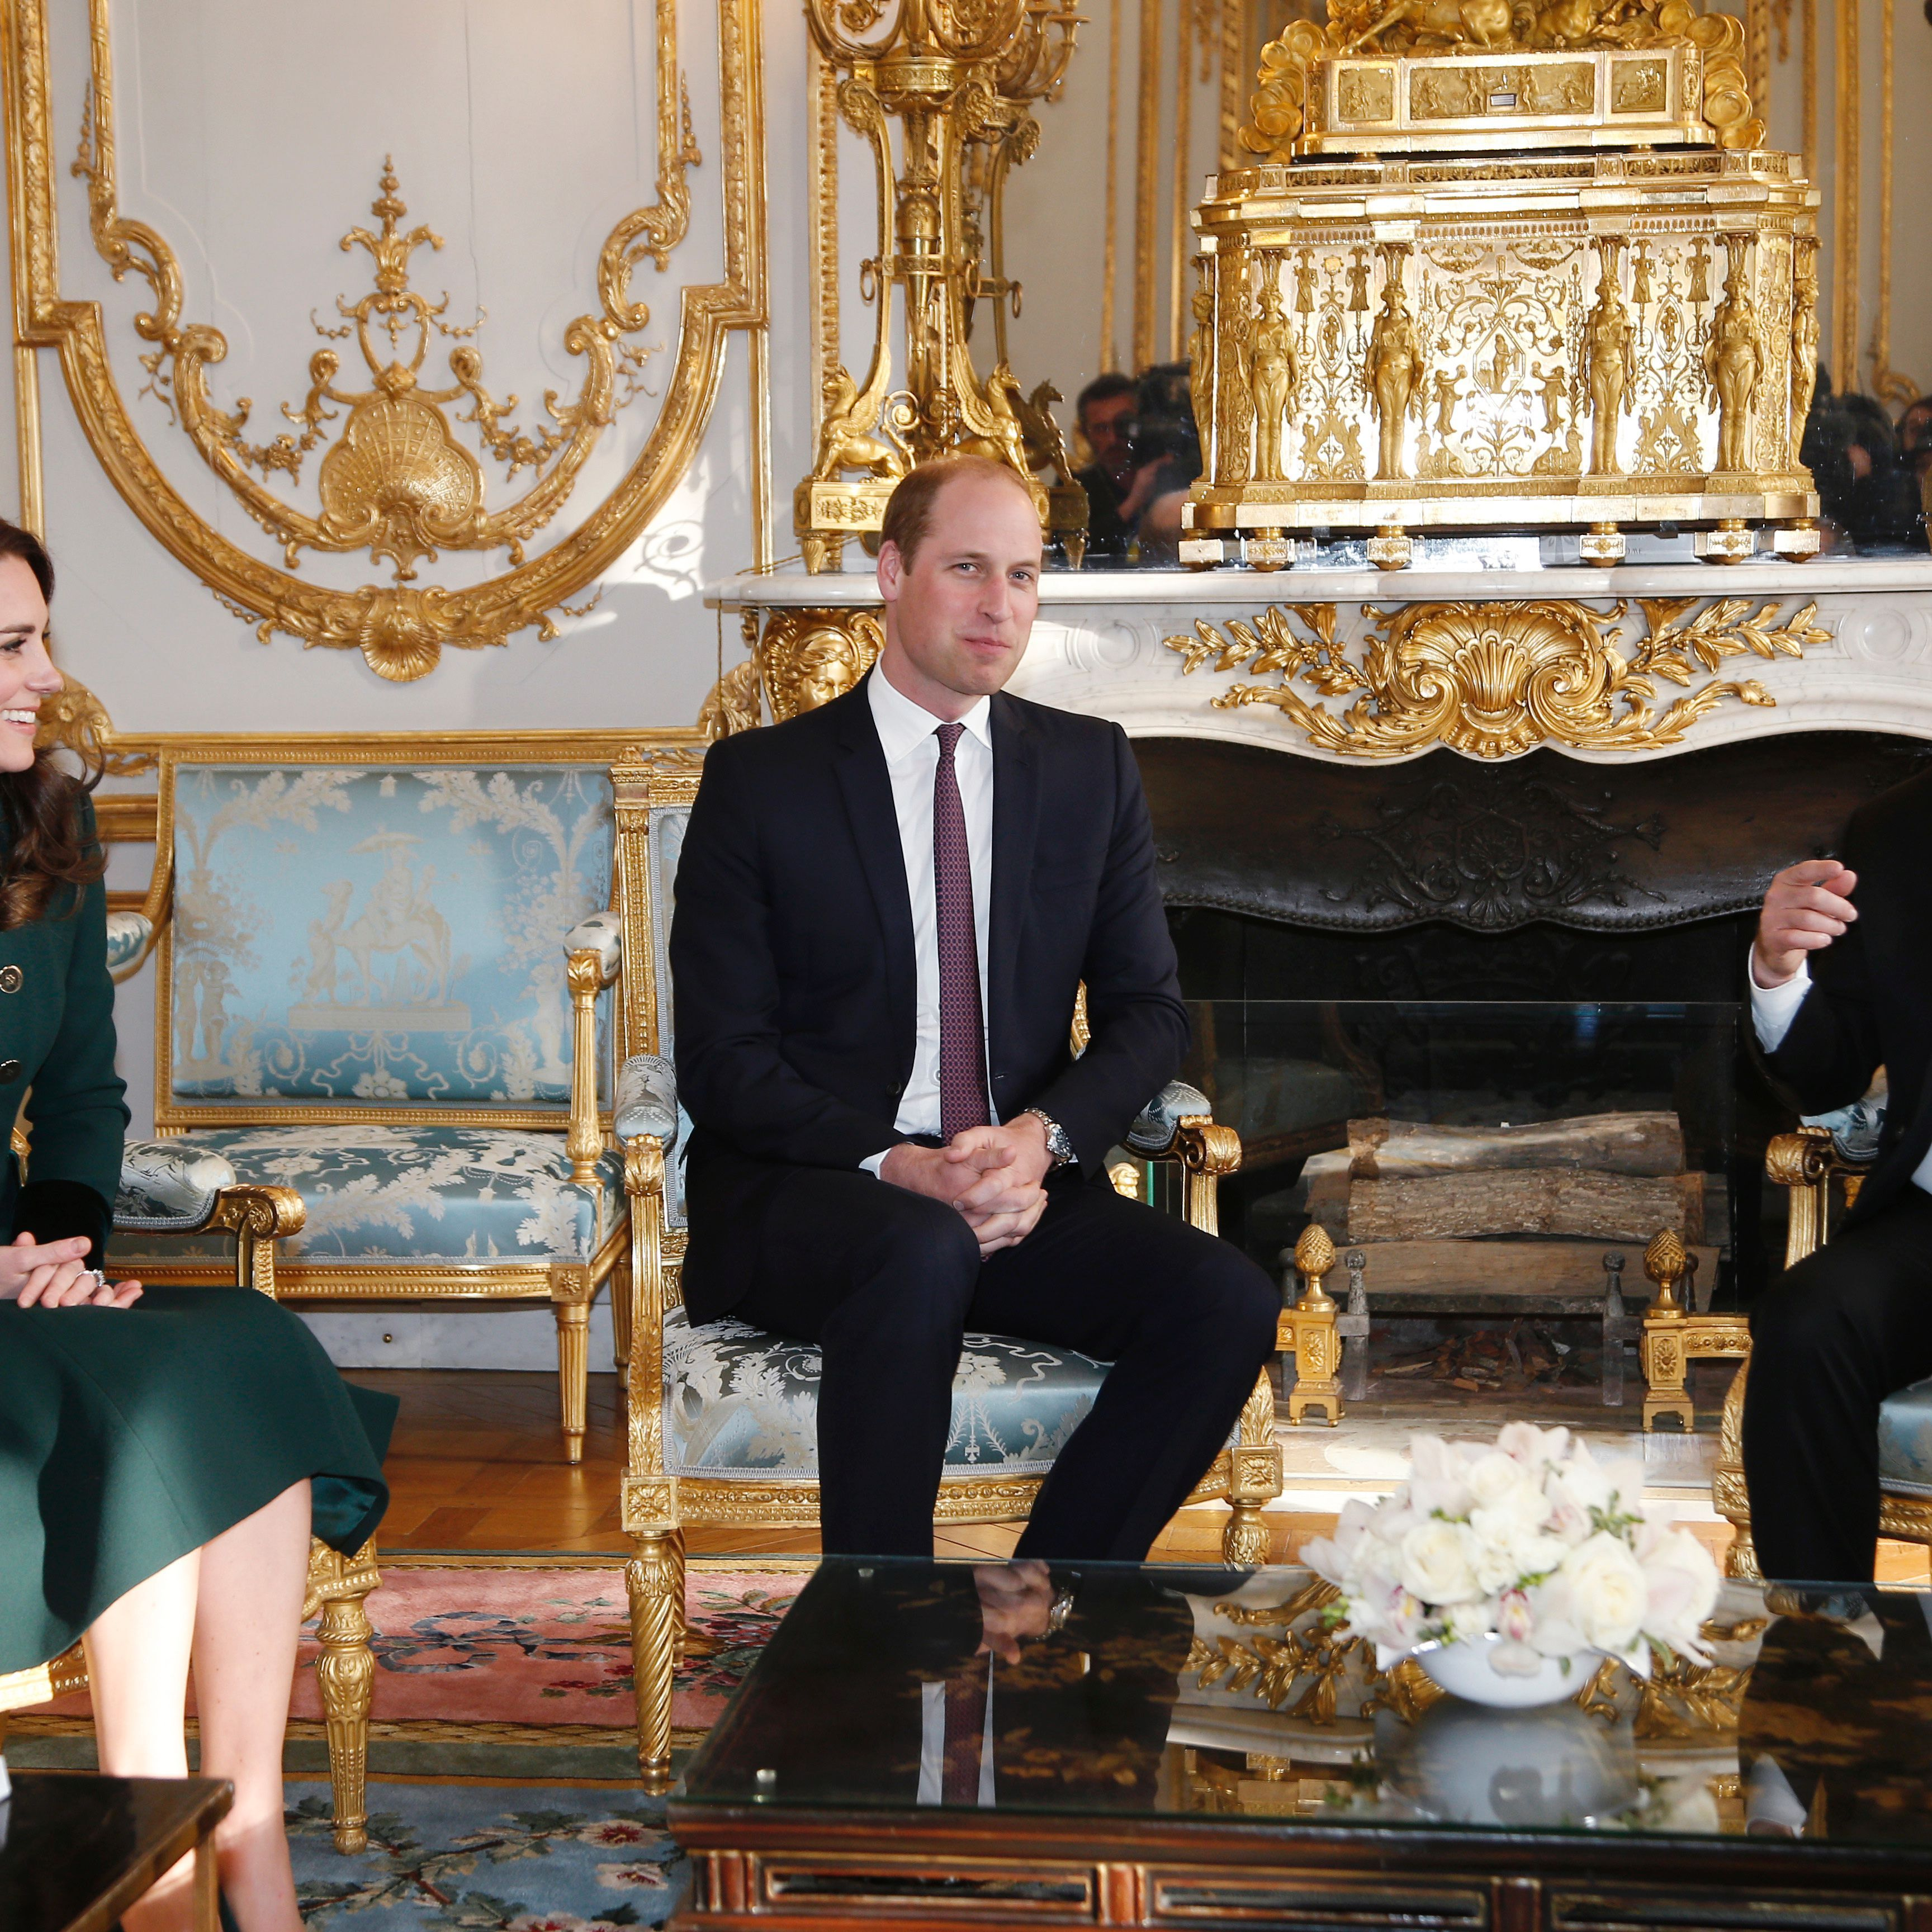 Prince William and the Duchess of Cambridge visit Paris for an official state visit